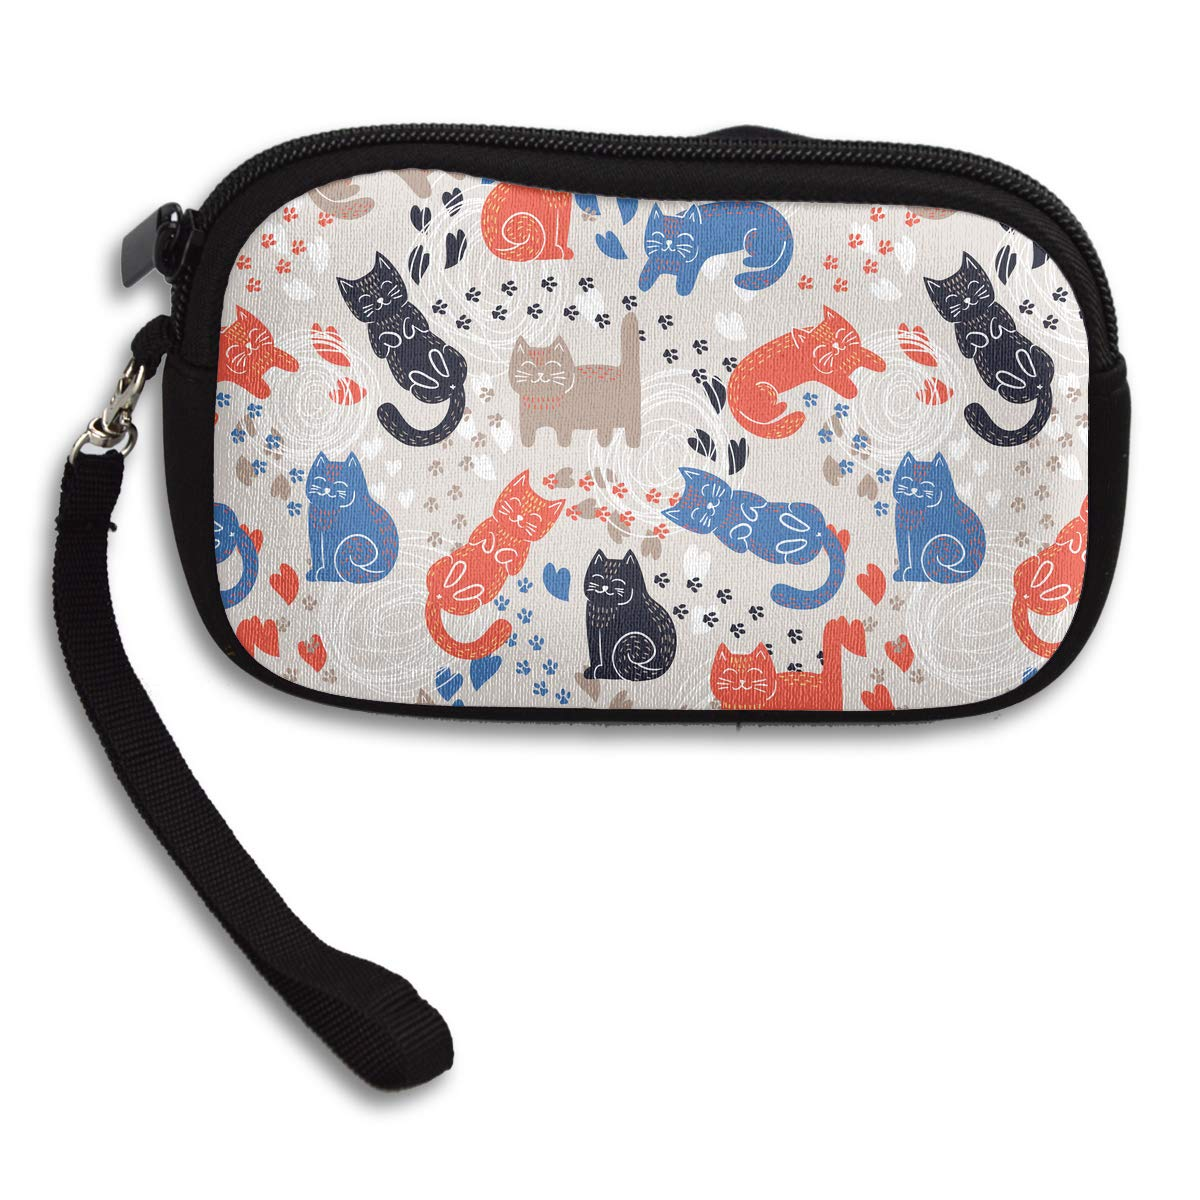 Cute Funny Cats Coin Purse Unique Change Purse,Make Up Bag,Cellphone Bag With Handle Purses For Women